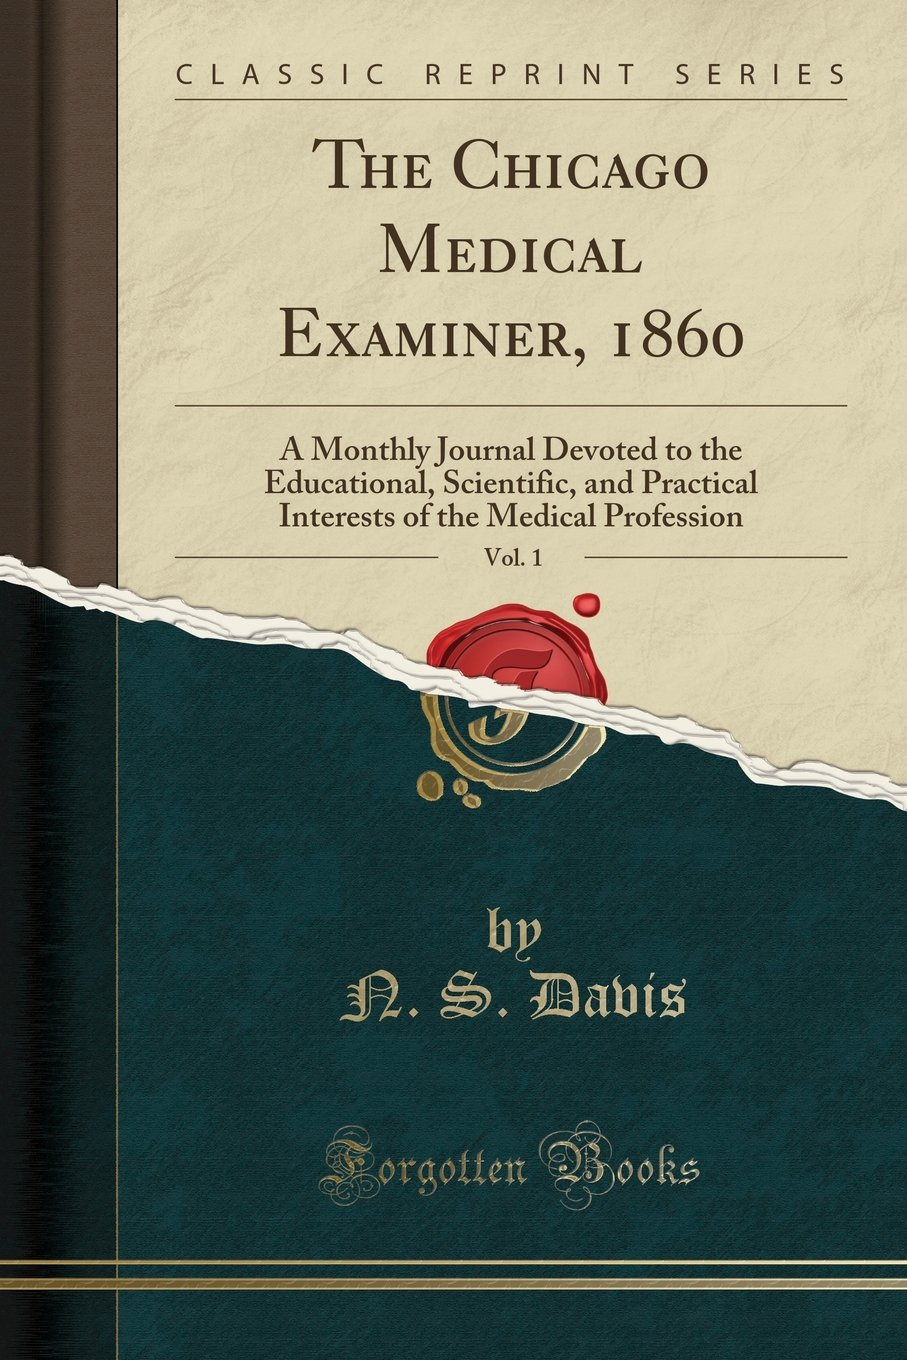 Read Online The Chicago Medical Examiner, 1860, Vol. 1: A Monthly Journal Devoted to the Educational, Scientific, and Practical Interests of the Medical Profession (Classic Reprint) PDF